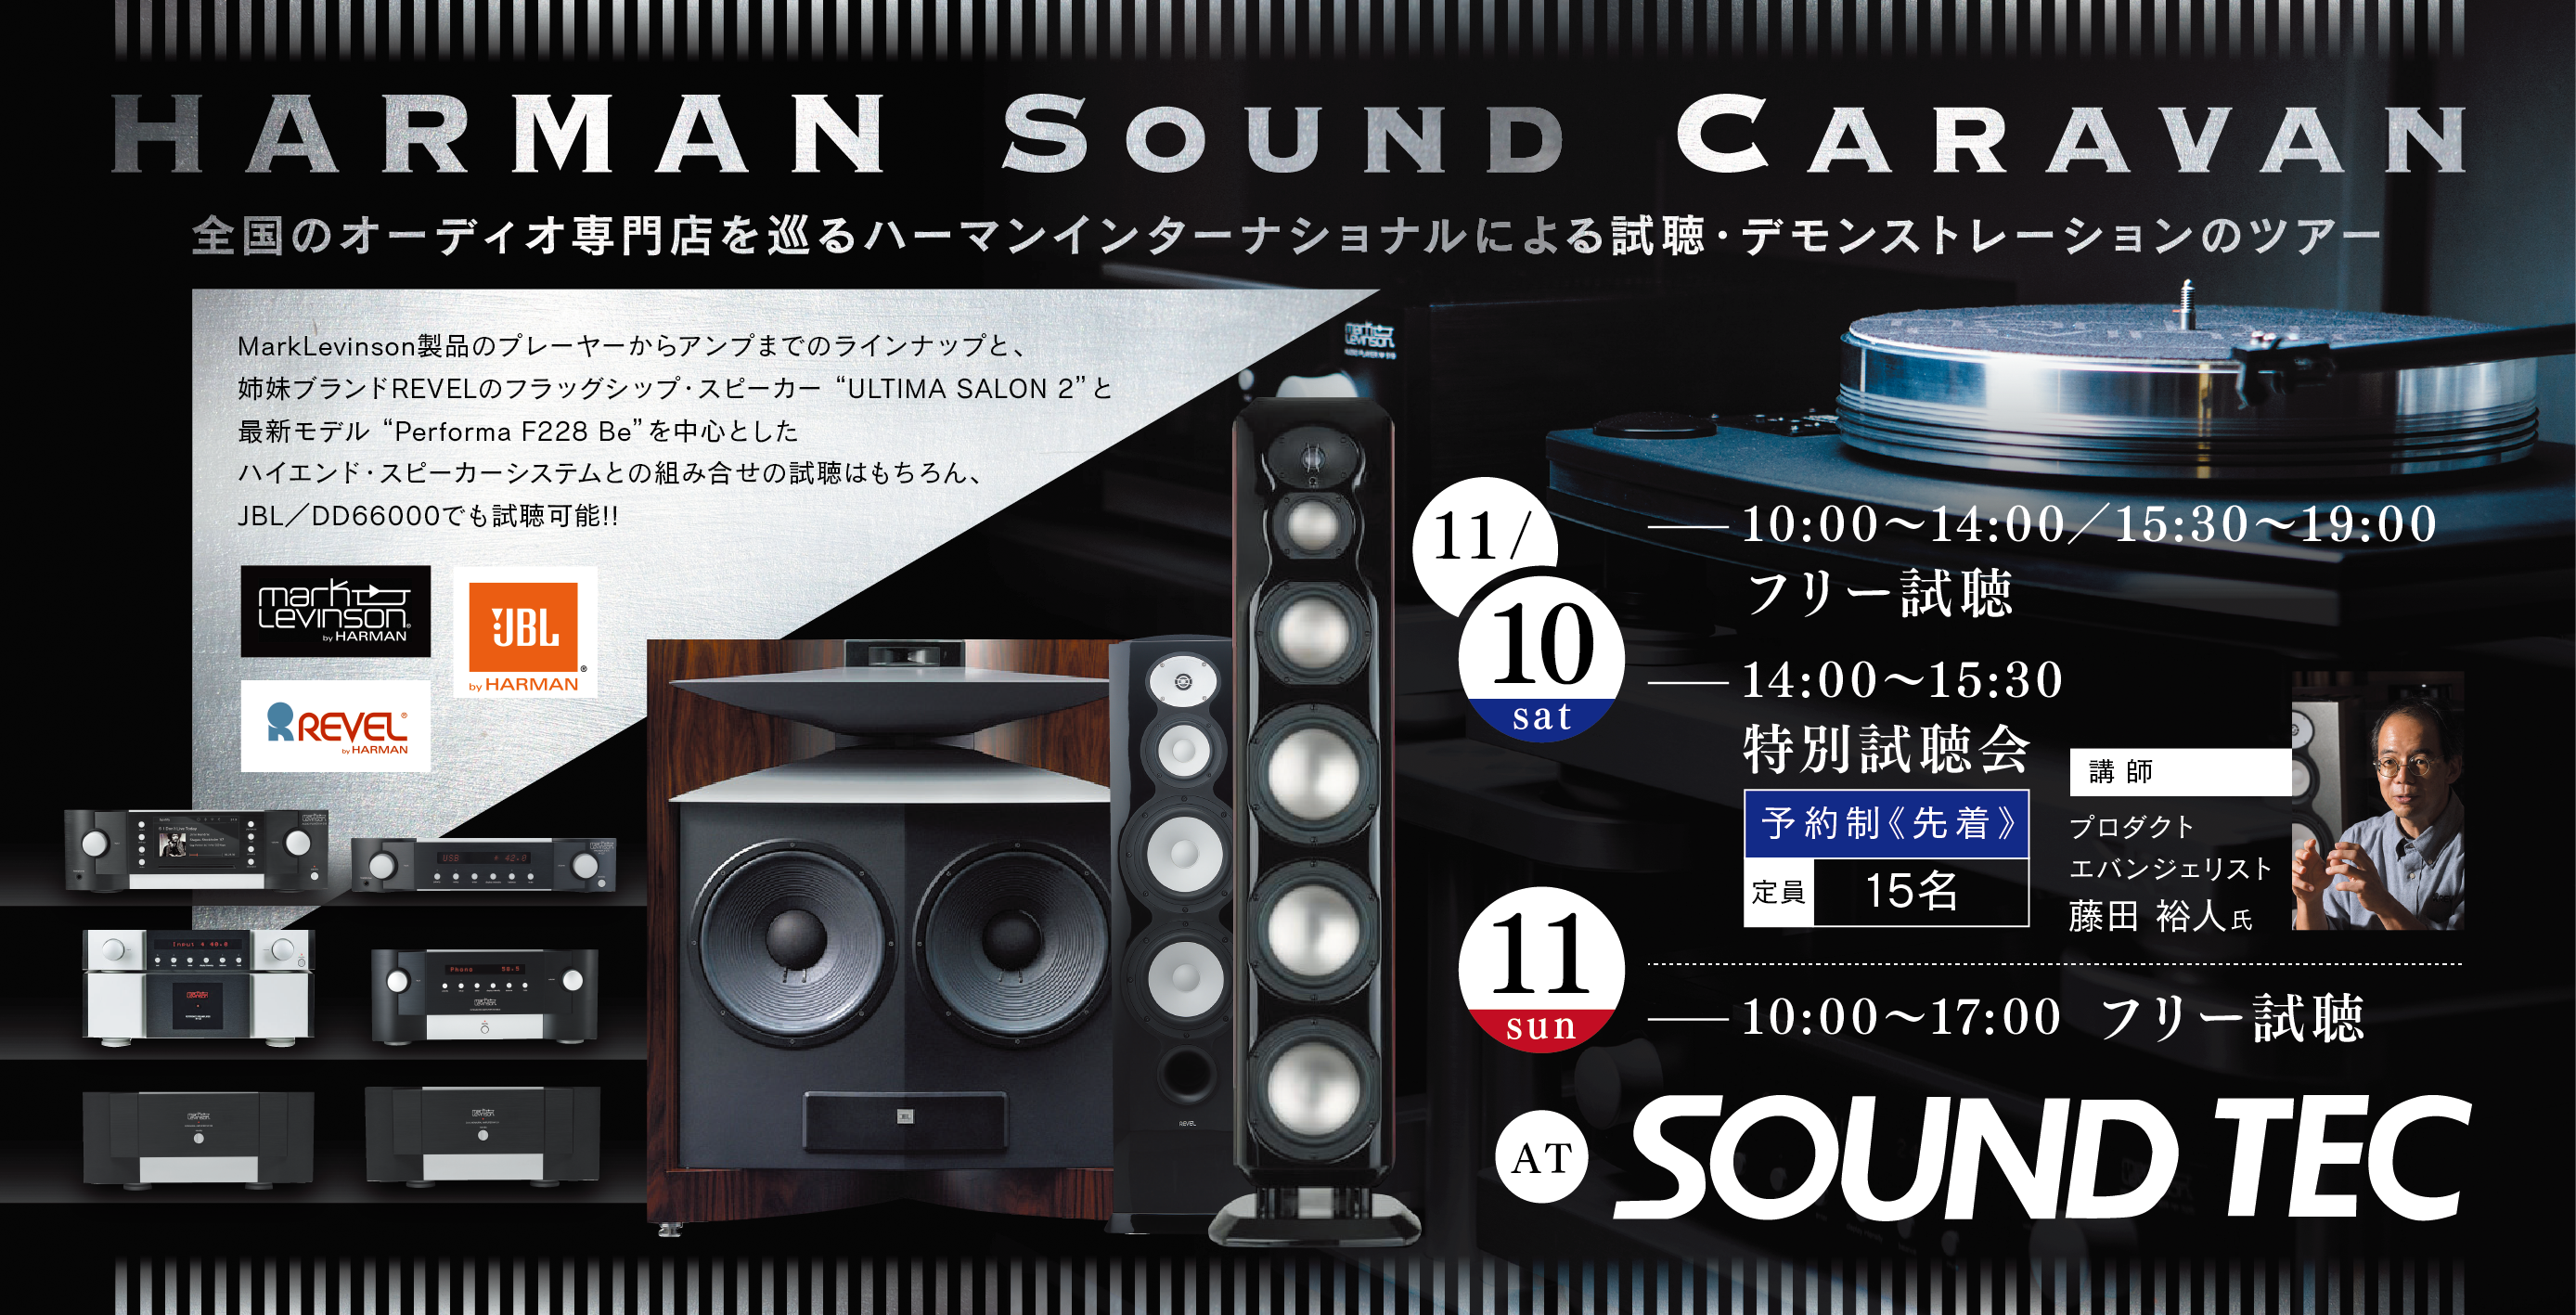 HARMAN SOUNDCARAVAN_SOUNDTEC Mark Levinson JBL REVEL